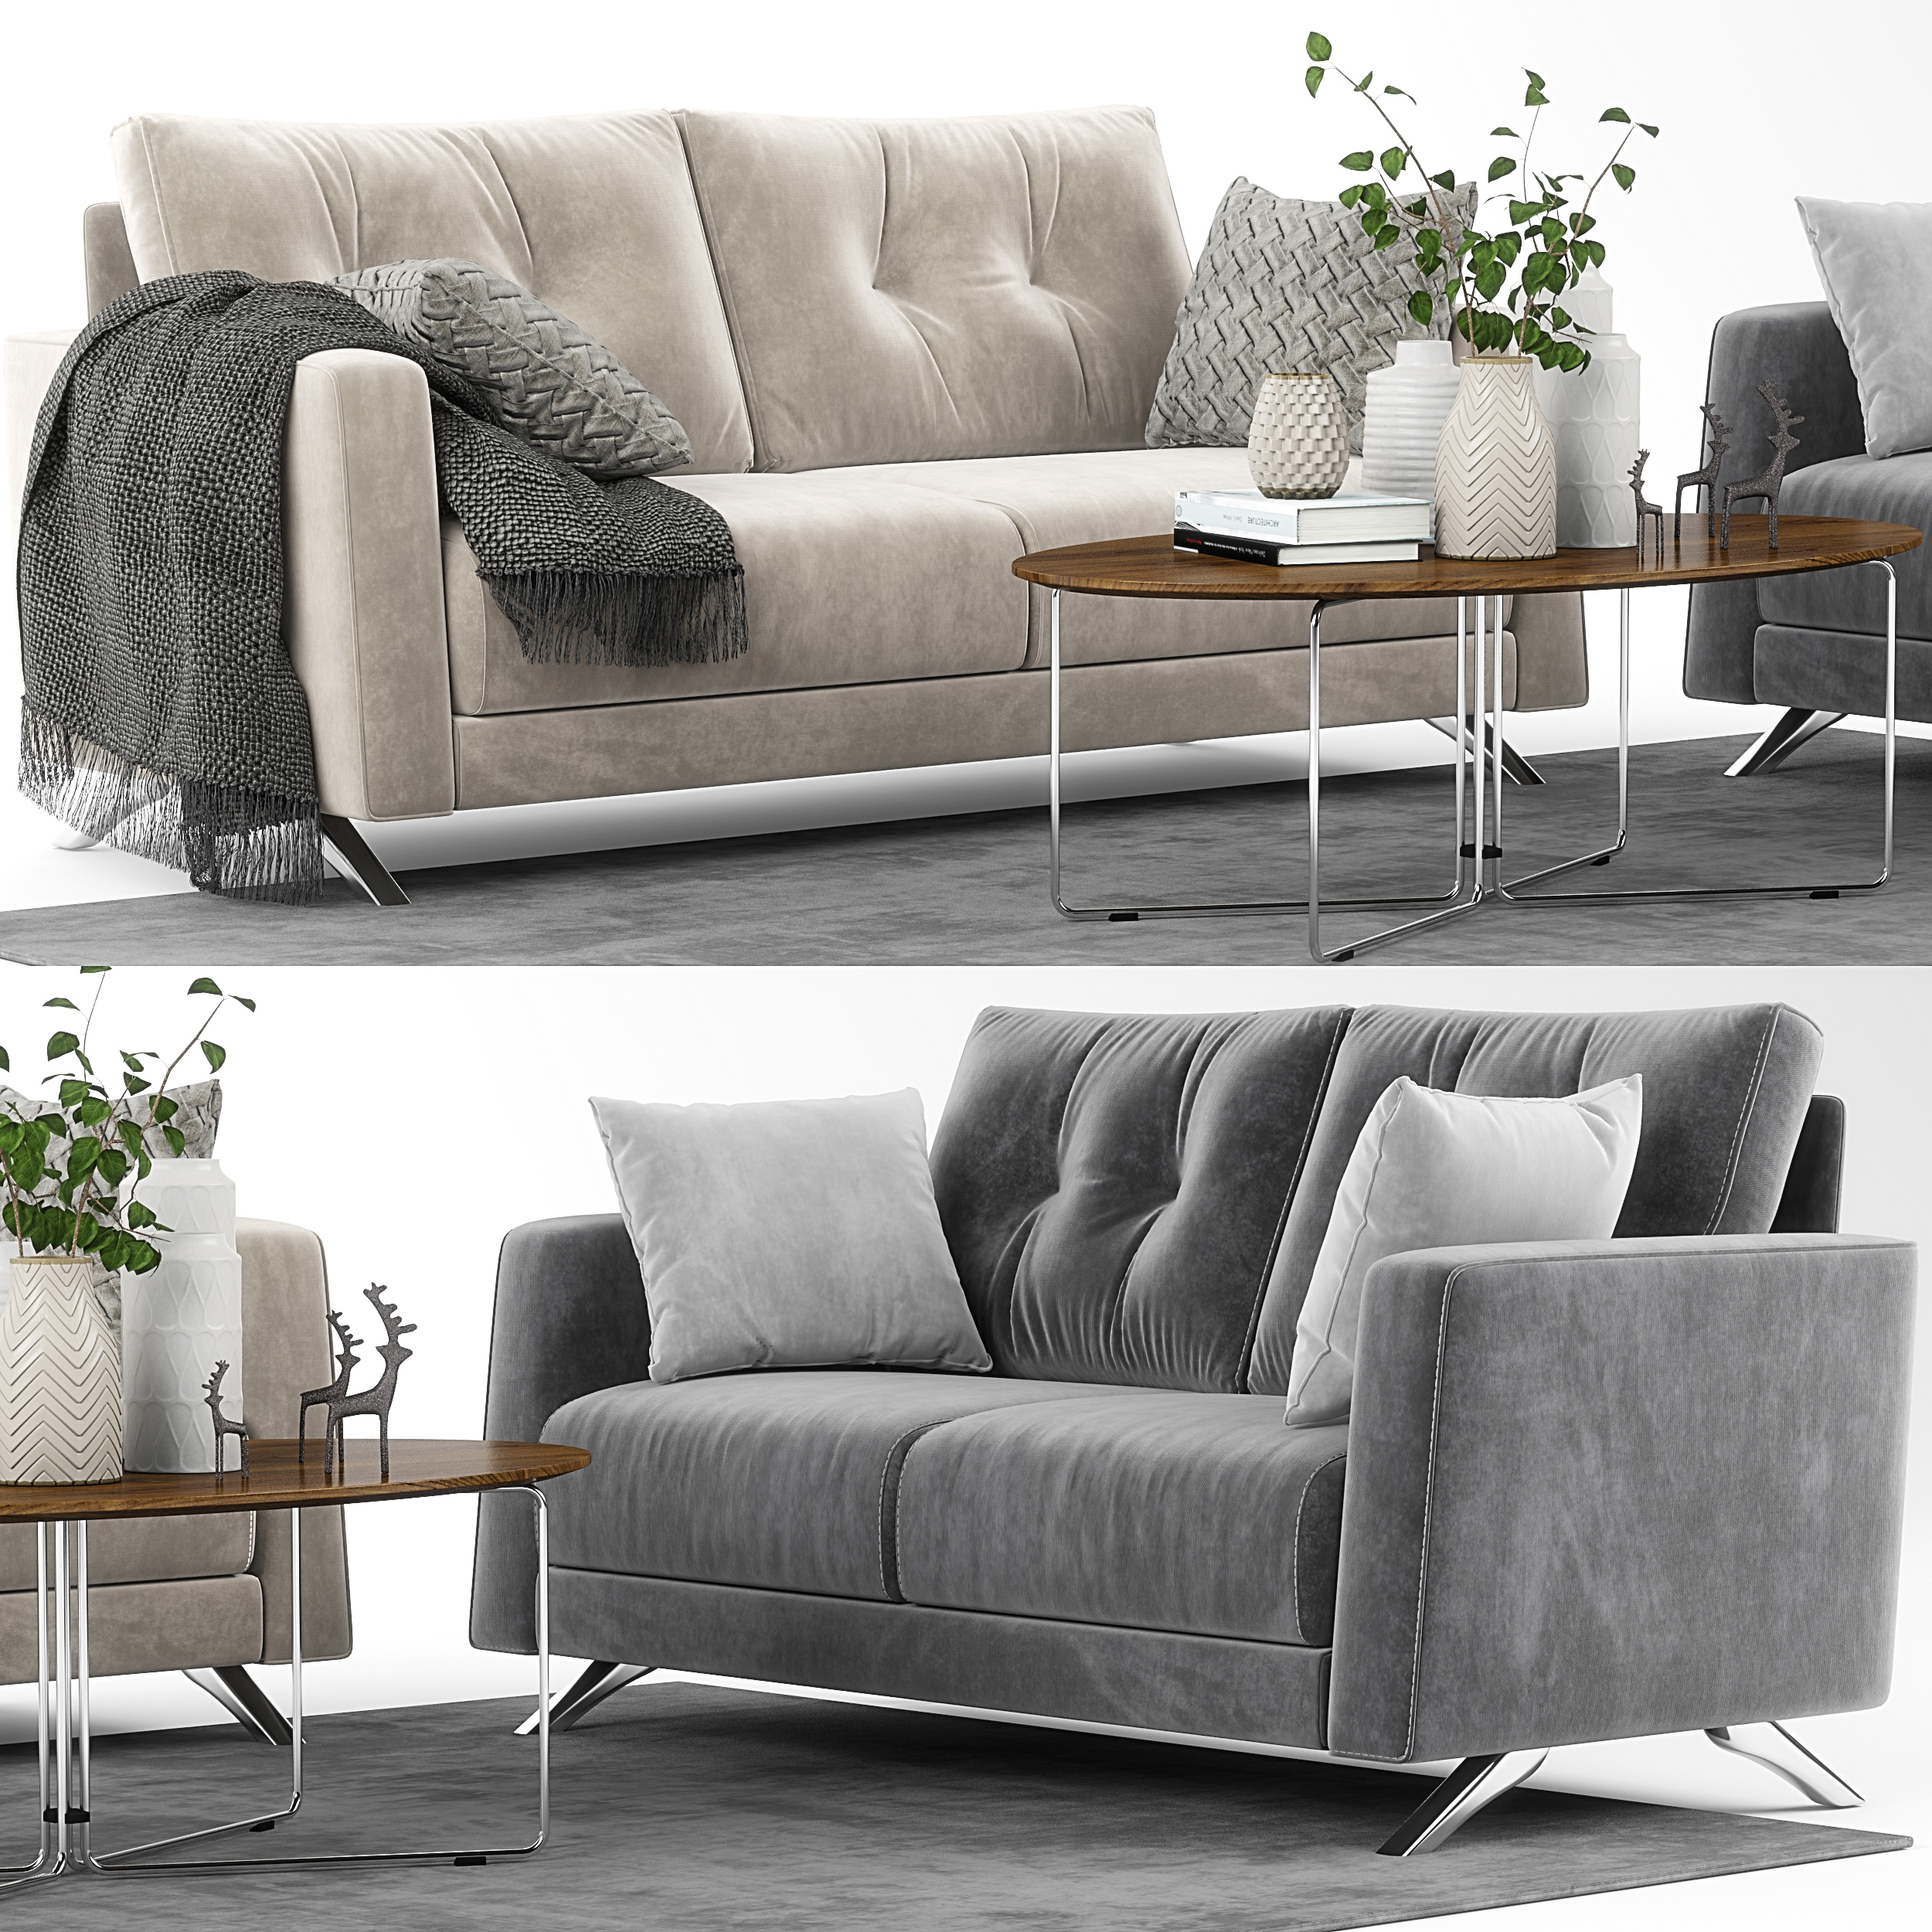 Superb Bari Sofa Set Gmtry Best Dining Table And Chair Ideas Images Gmtryco